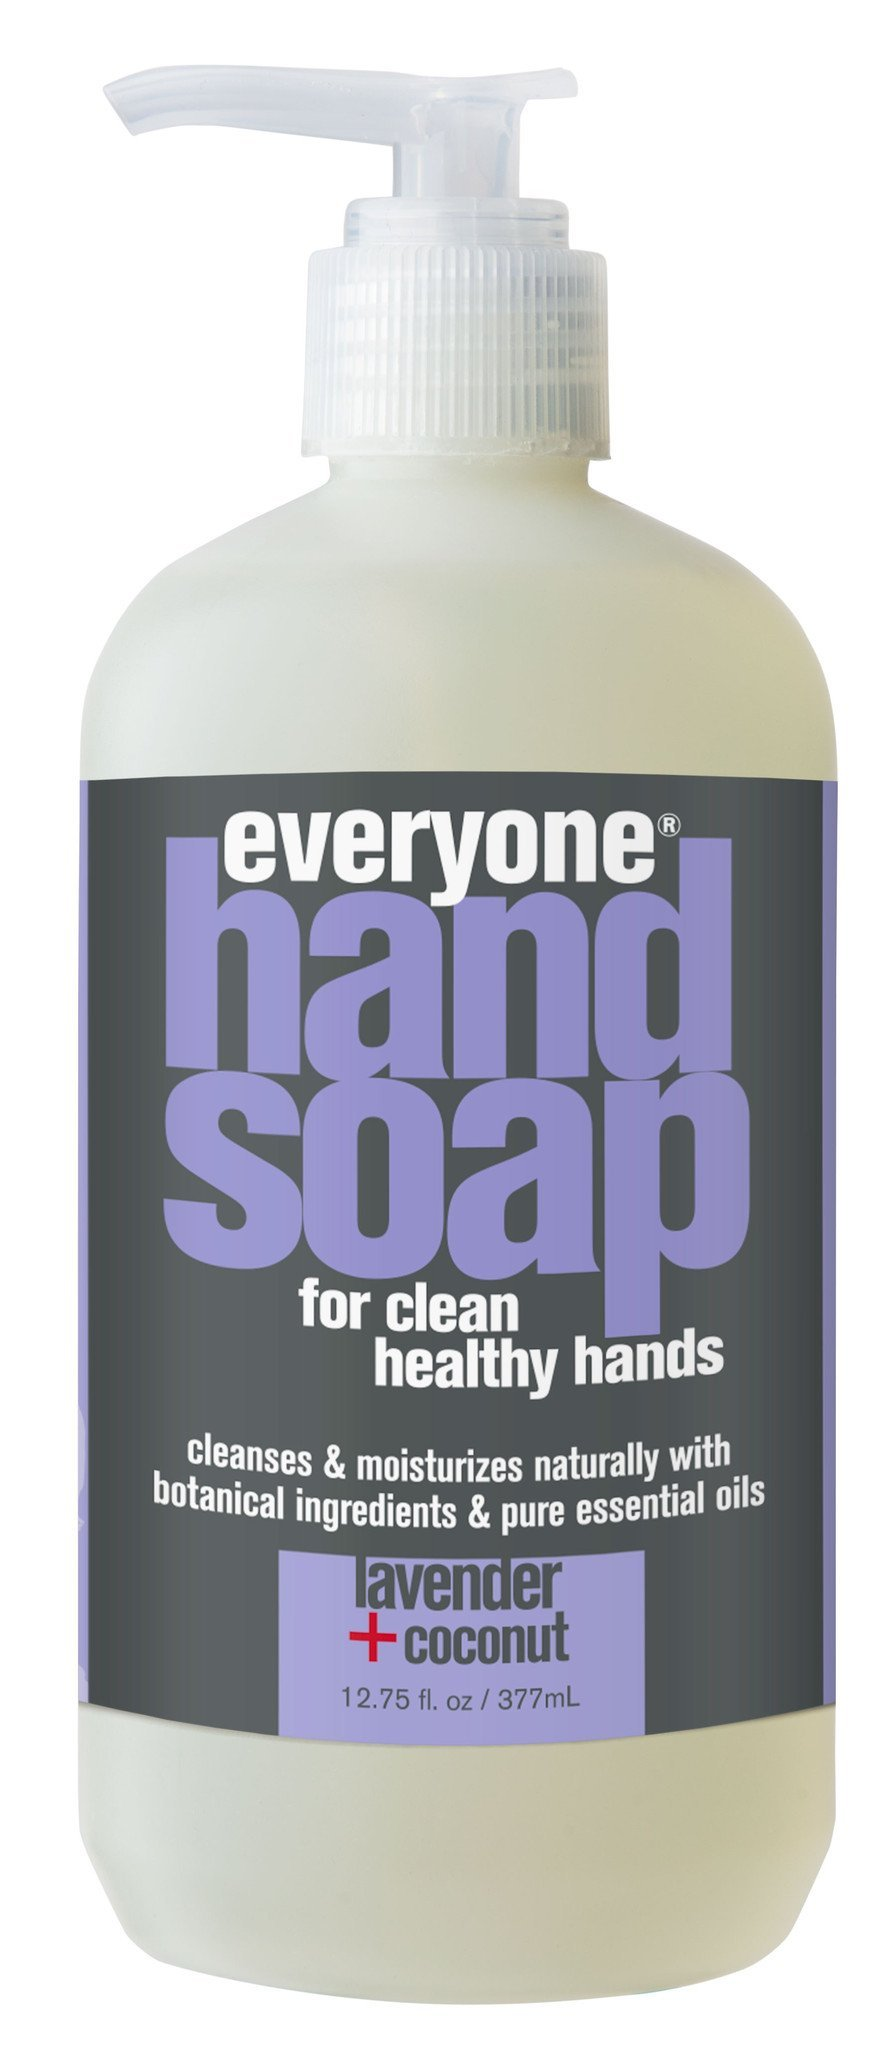 Personal Care,Gluten Free,Non GMO - EO - Everyone Lavender & Coconut Hand Soap, 377ml